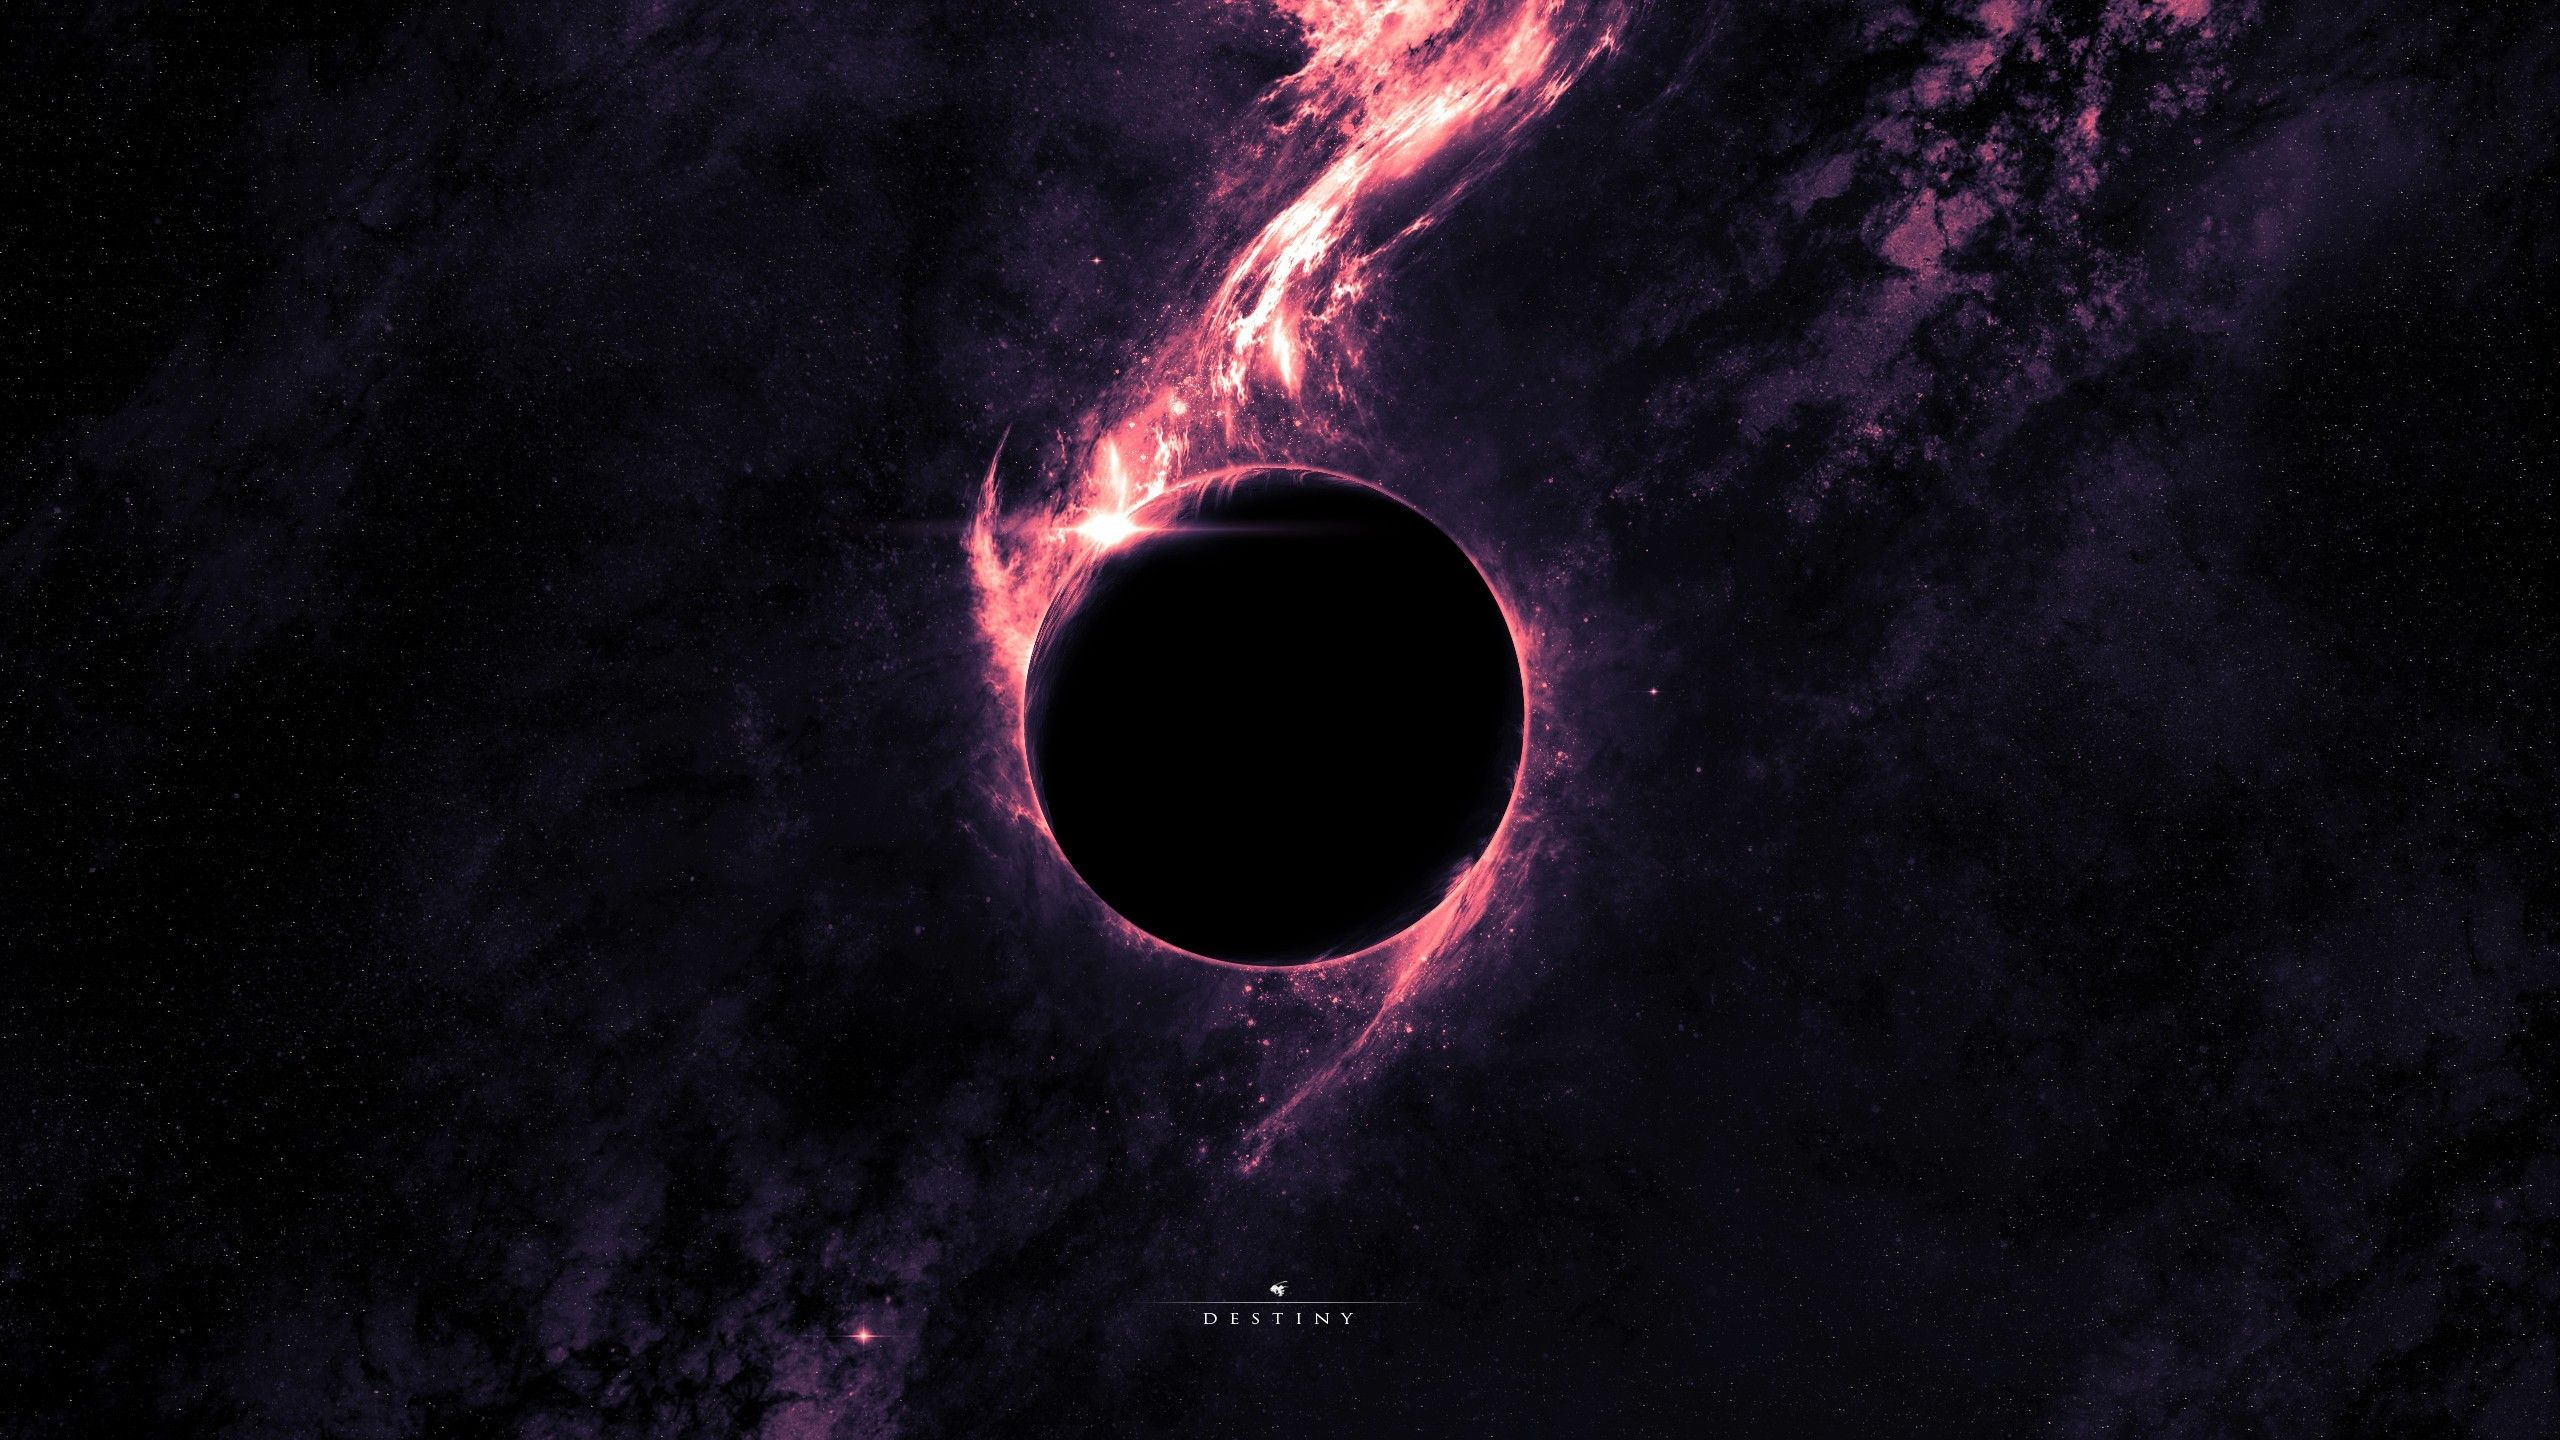 2560x1440 Space Black Hole Wallpapers 16 Wallpapers In